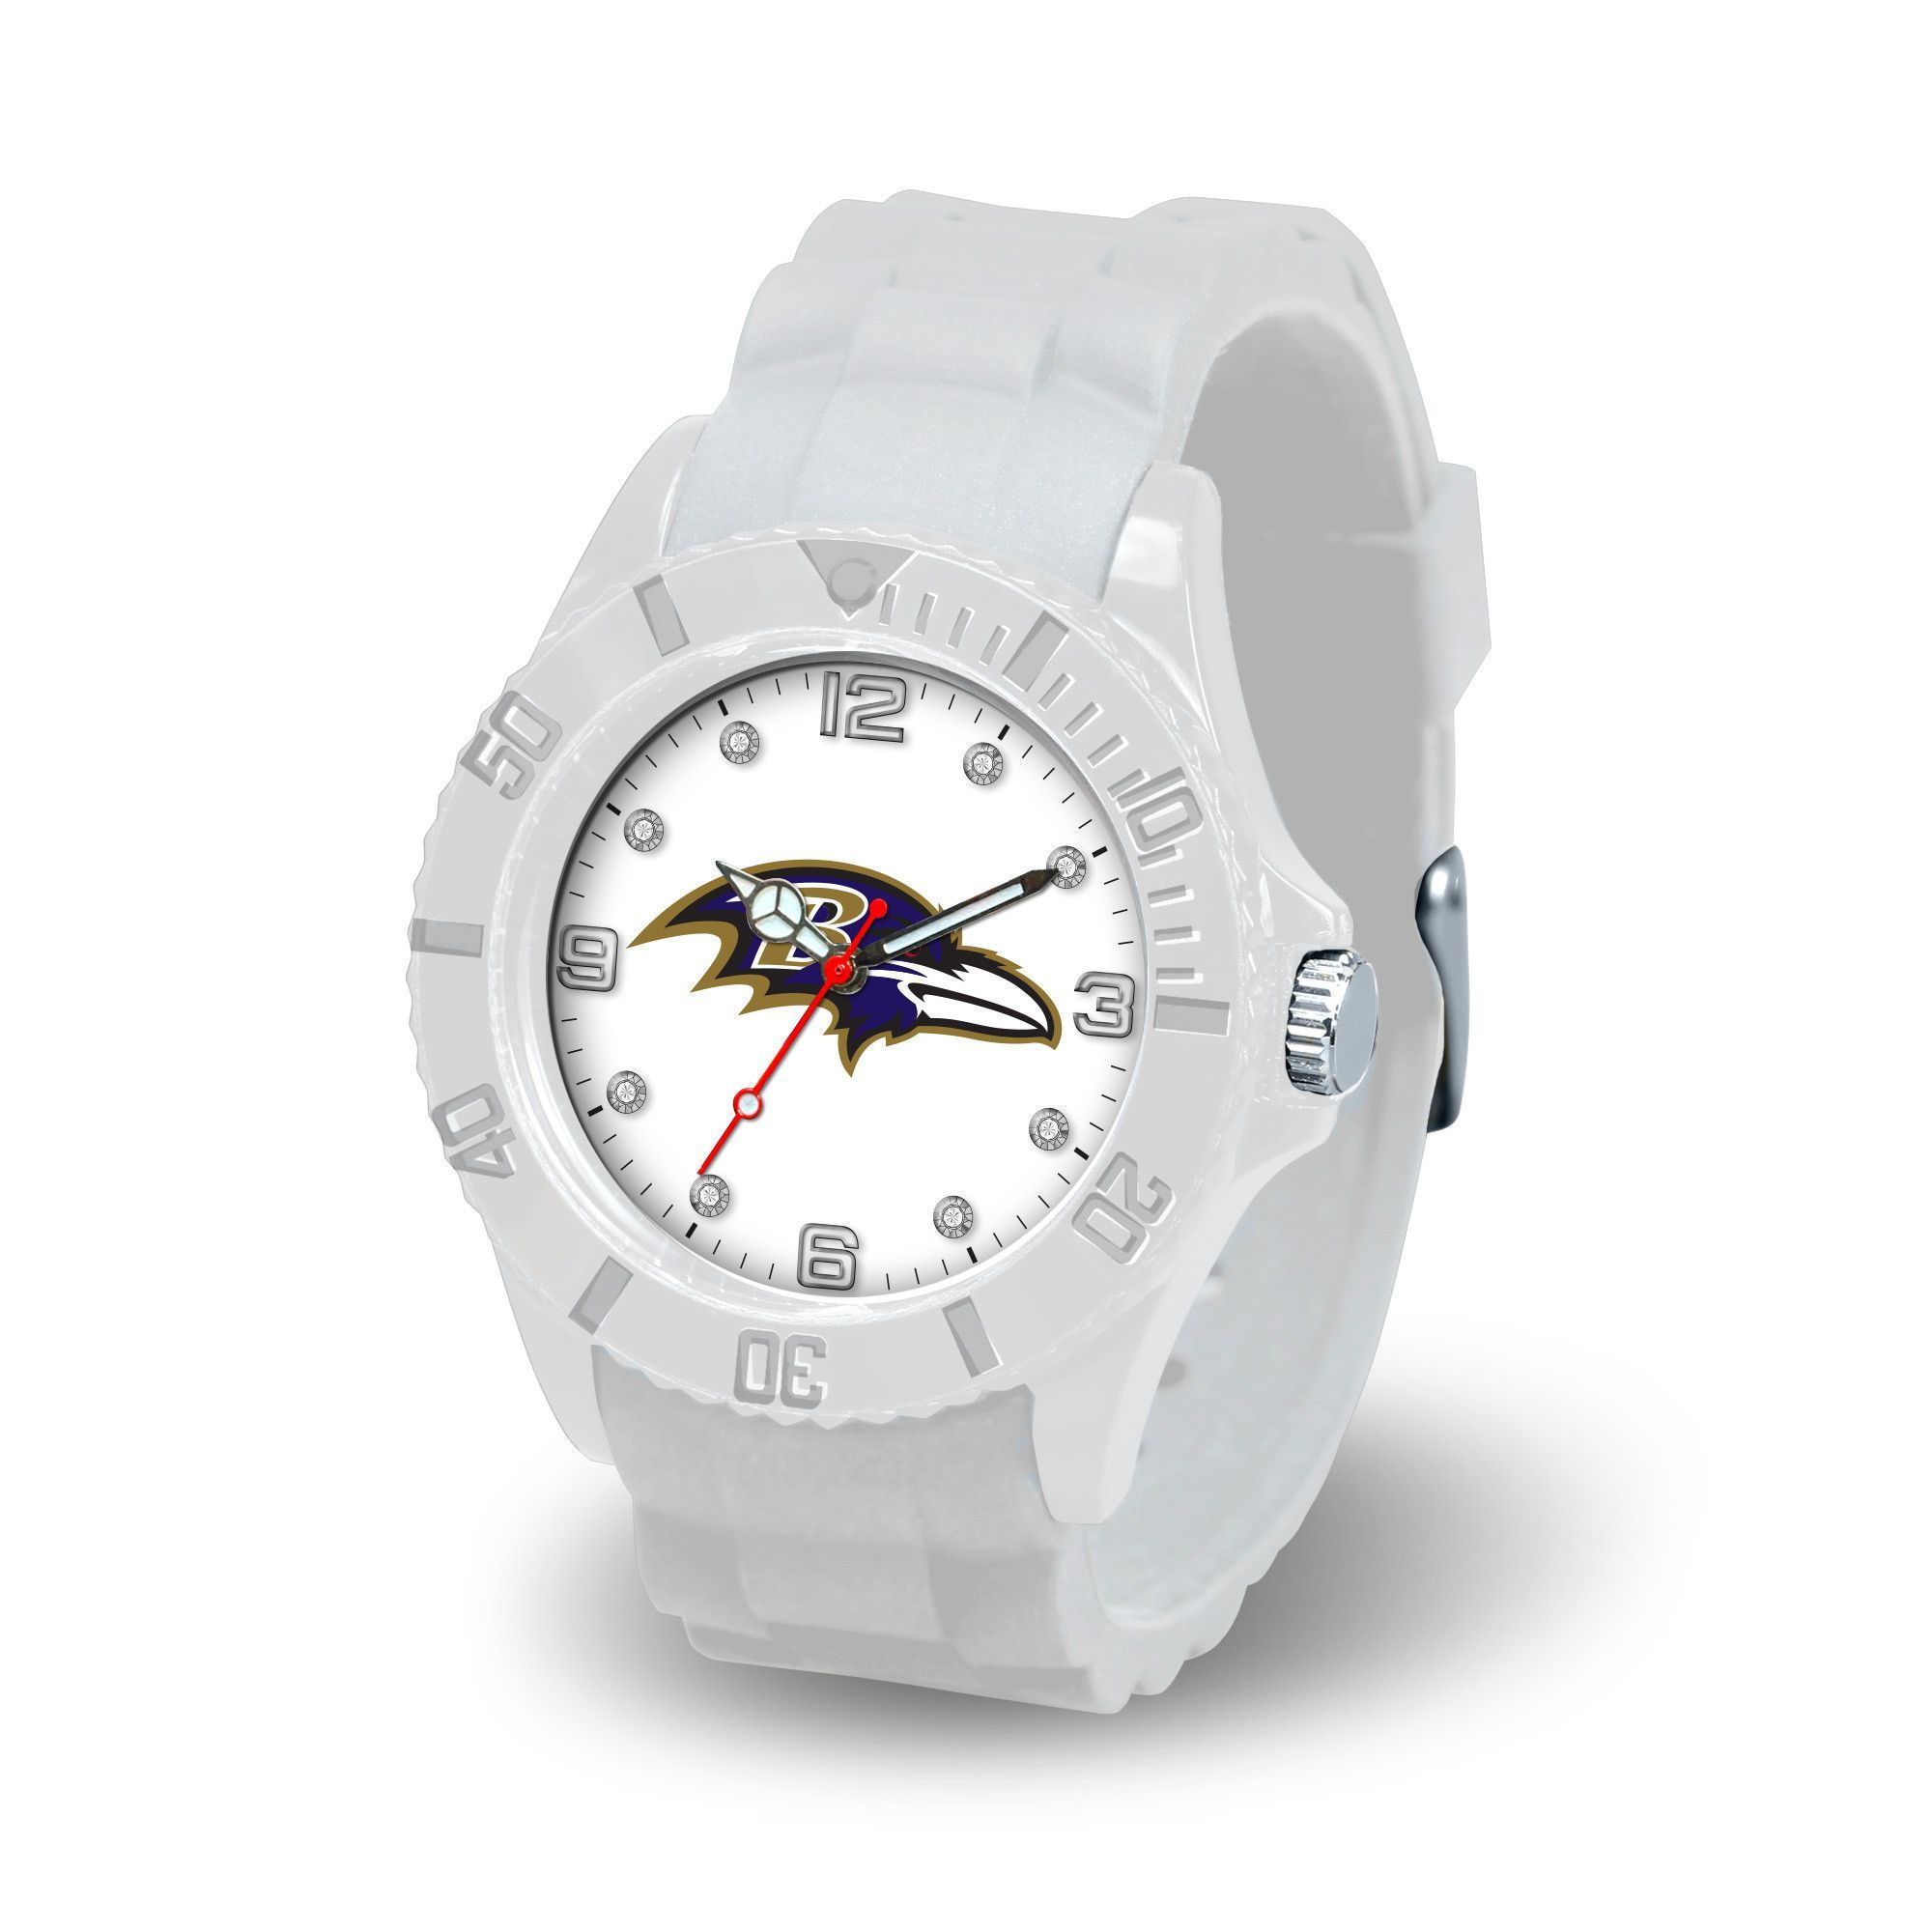 aviatrix co cloud abingdon collection in category white watches frontview amelia product